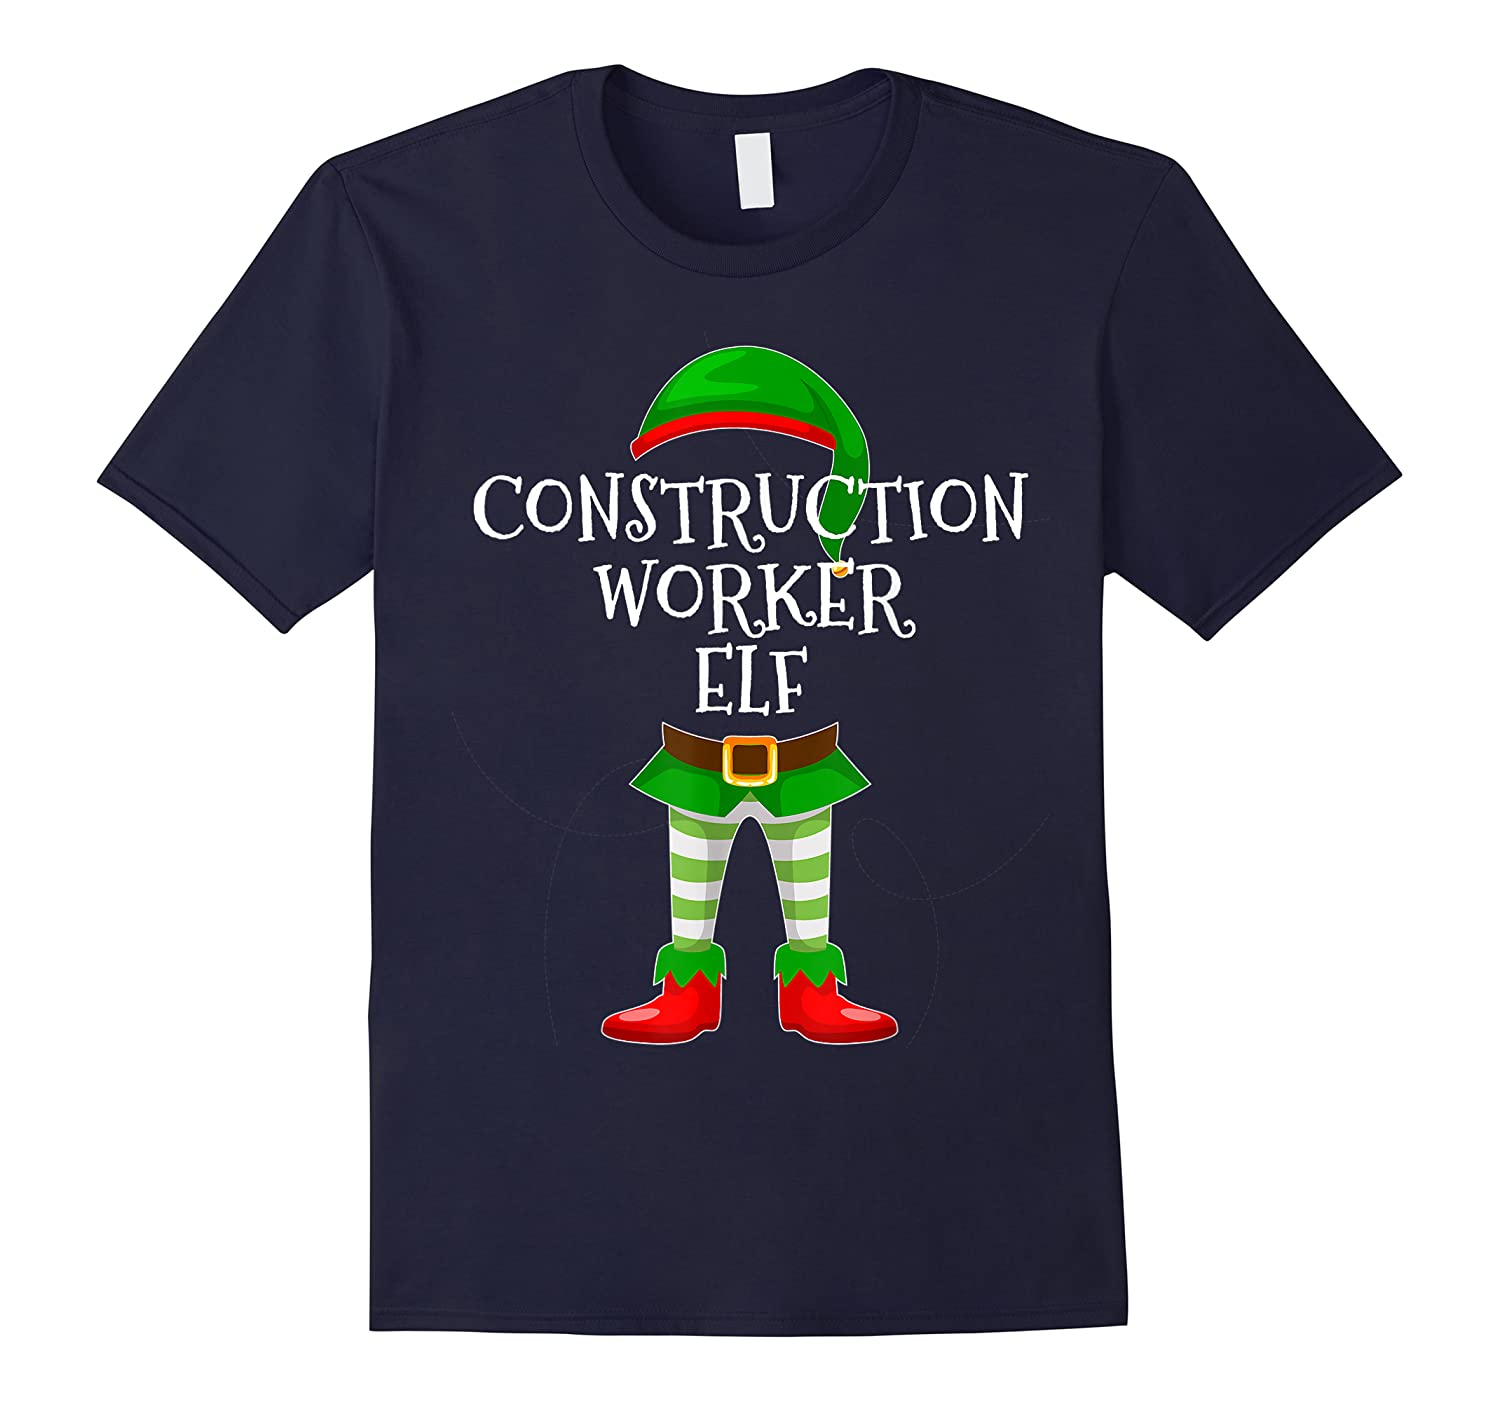 Construction Worker Elf Matching Family Christmas Design Shirts